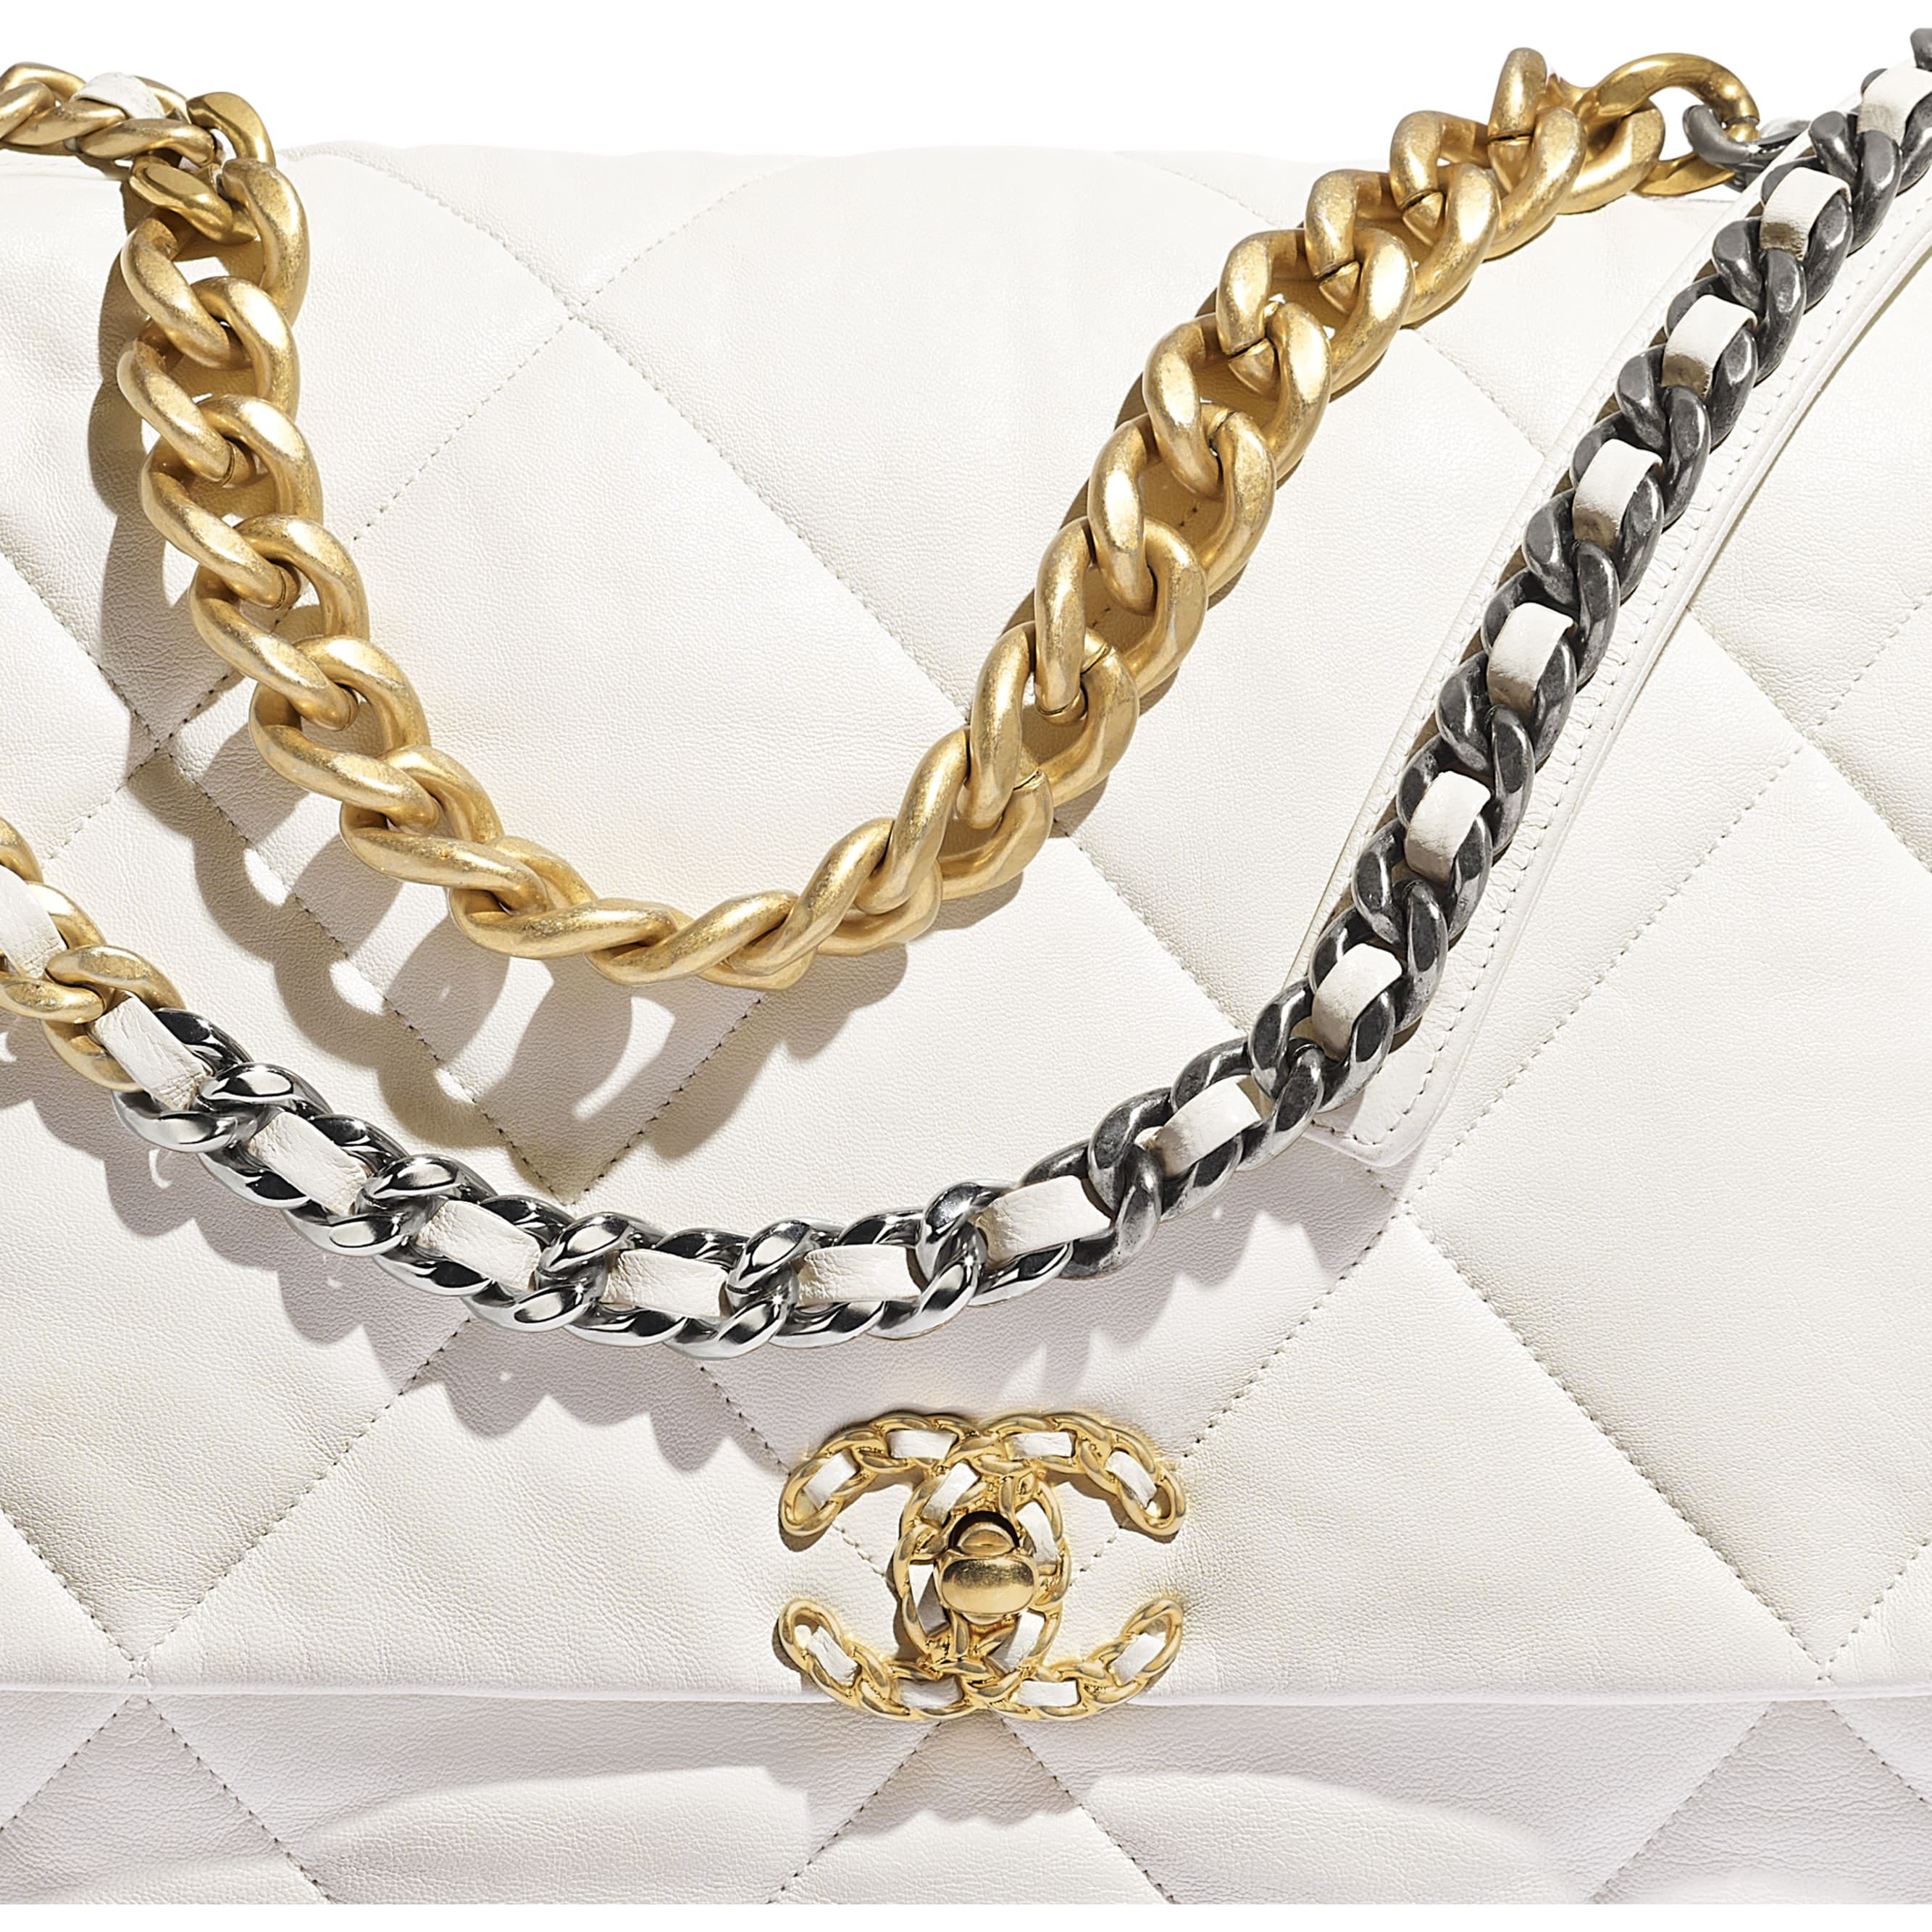 CHANEL 19 Maxi Flap Bag - White - Goatskin, Gold-Tone, Silver-Tone & Ruthenium-Finish Metal - Extra view - see standard sized version